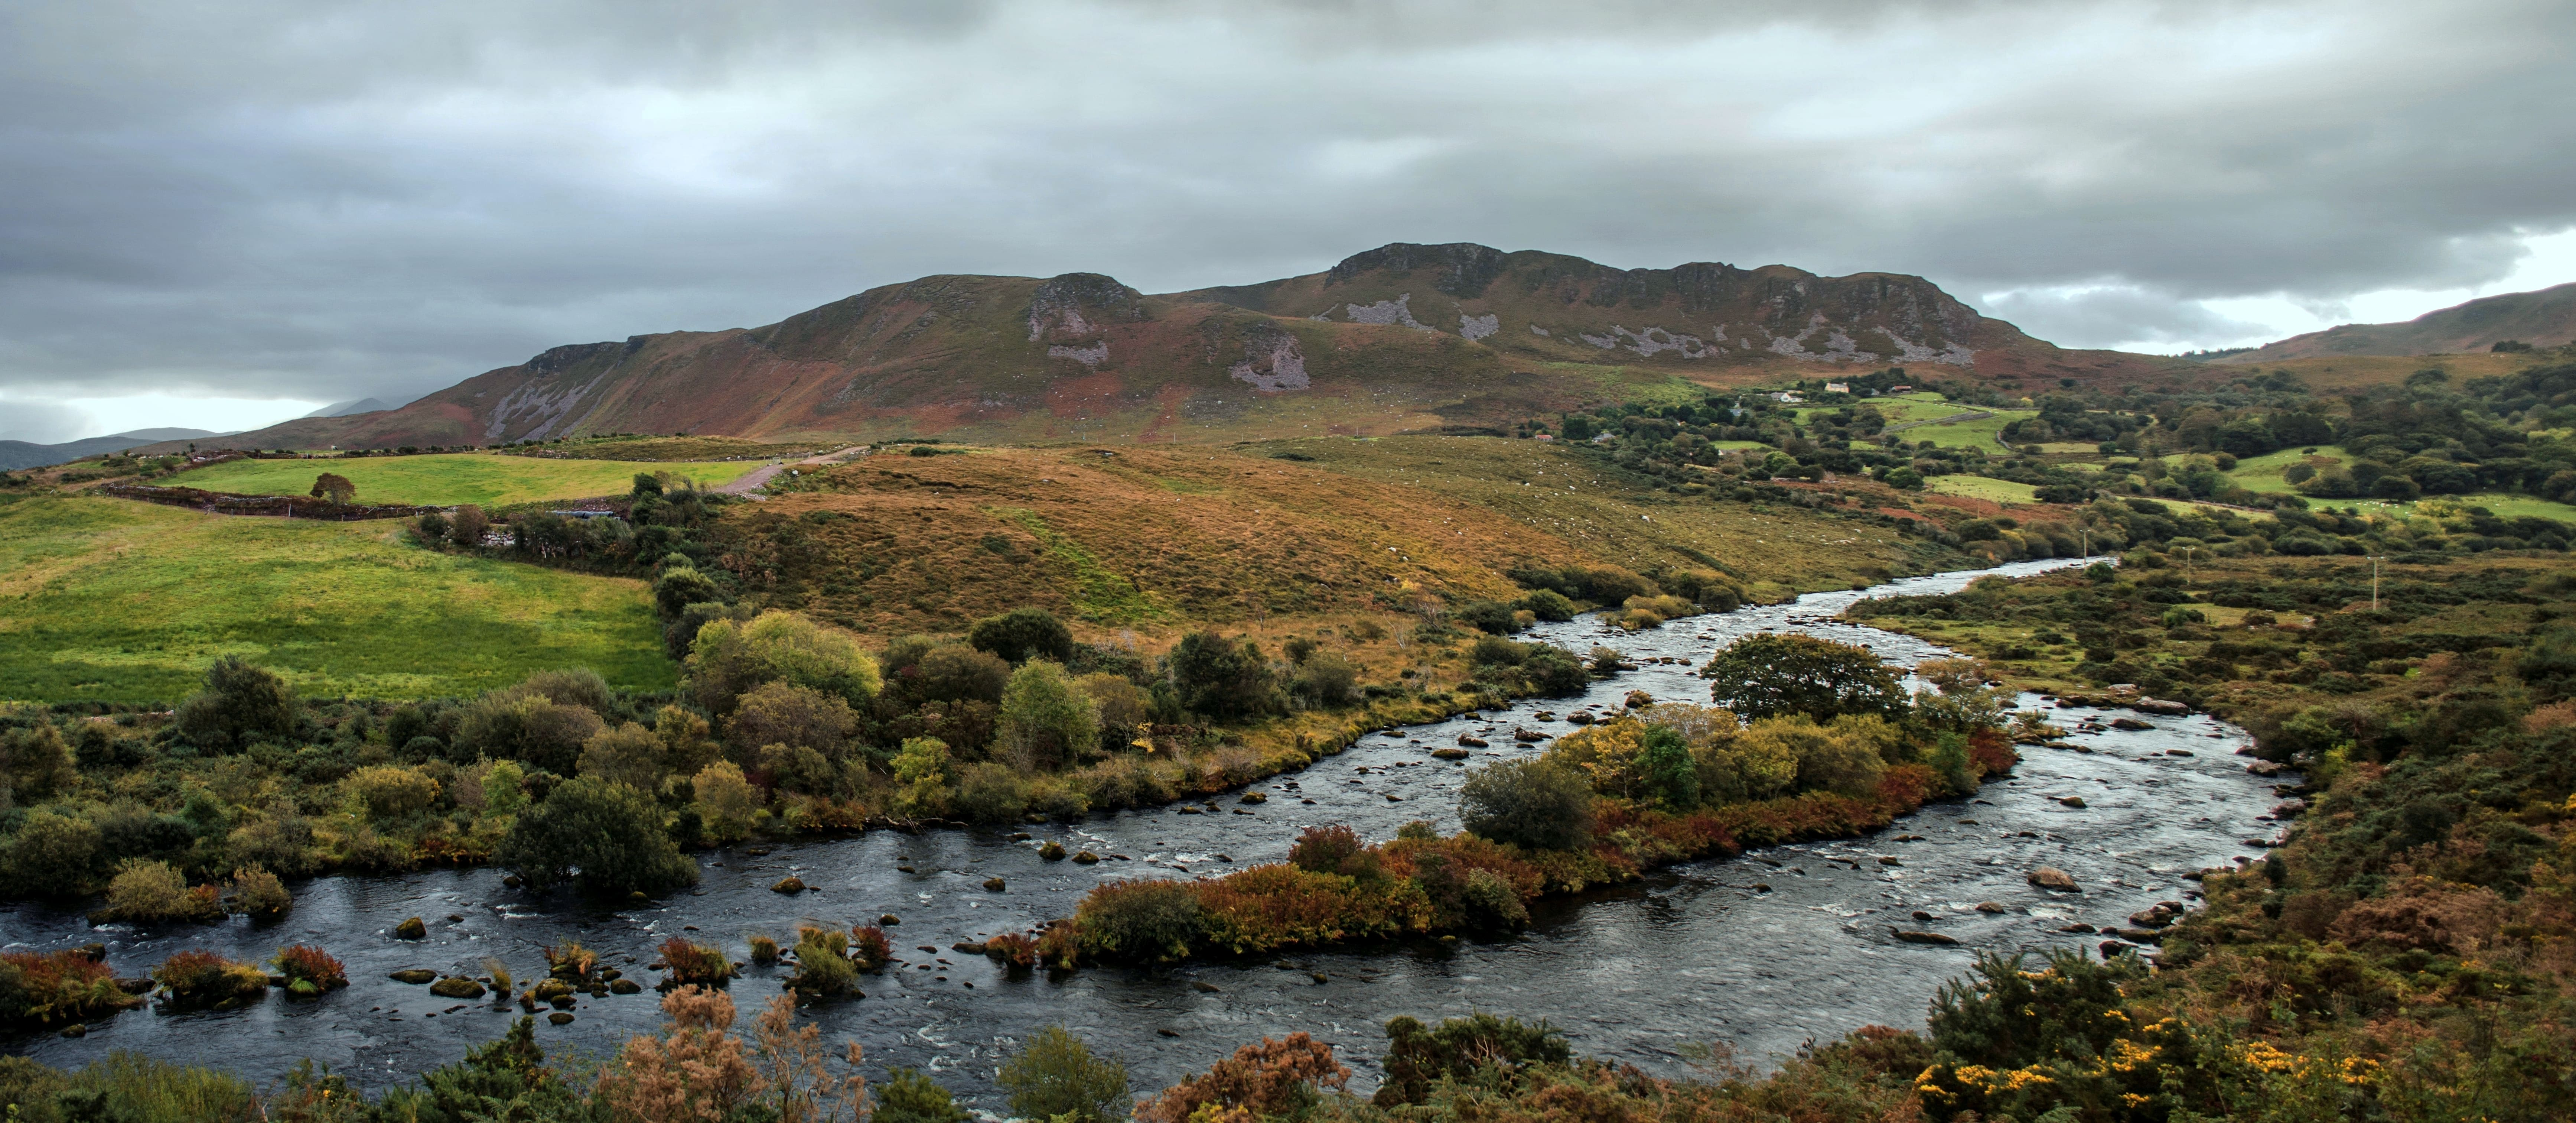 Exploring the gorgeous Ring of Kerry is an awesome thing to do in Ireland